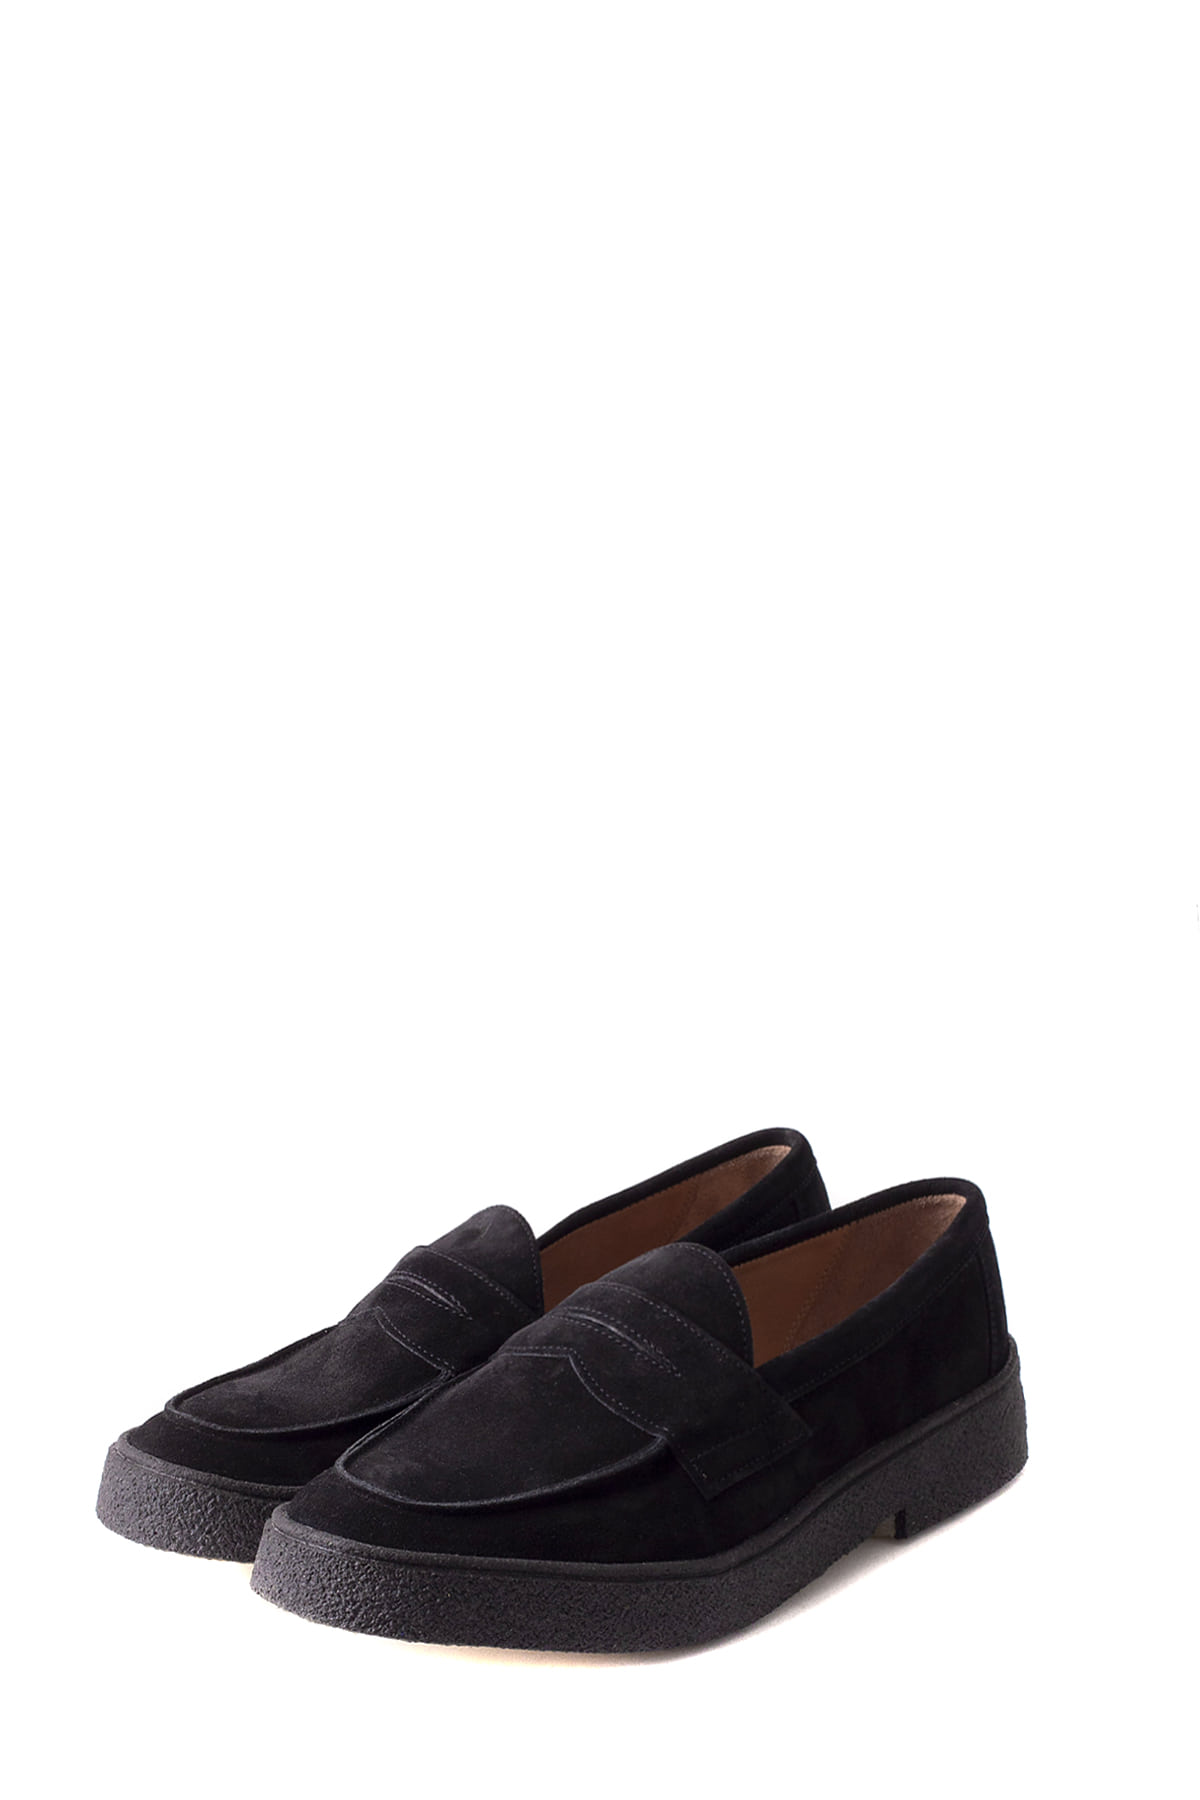 GEORGE COX :  Penny Loafer (Black Suede)